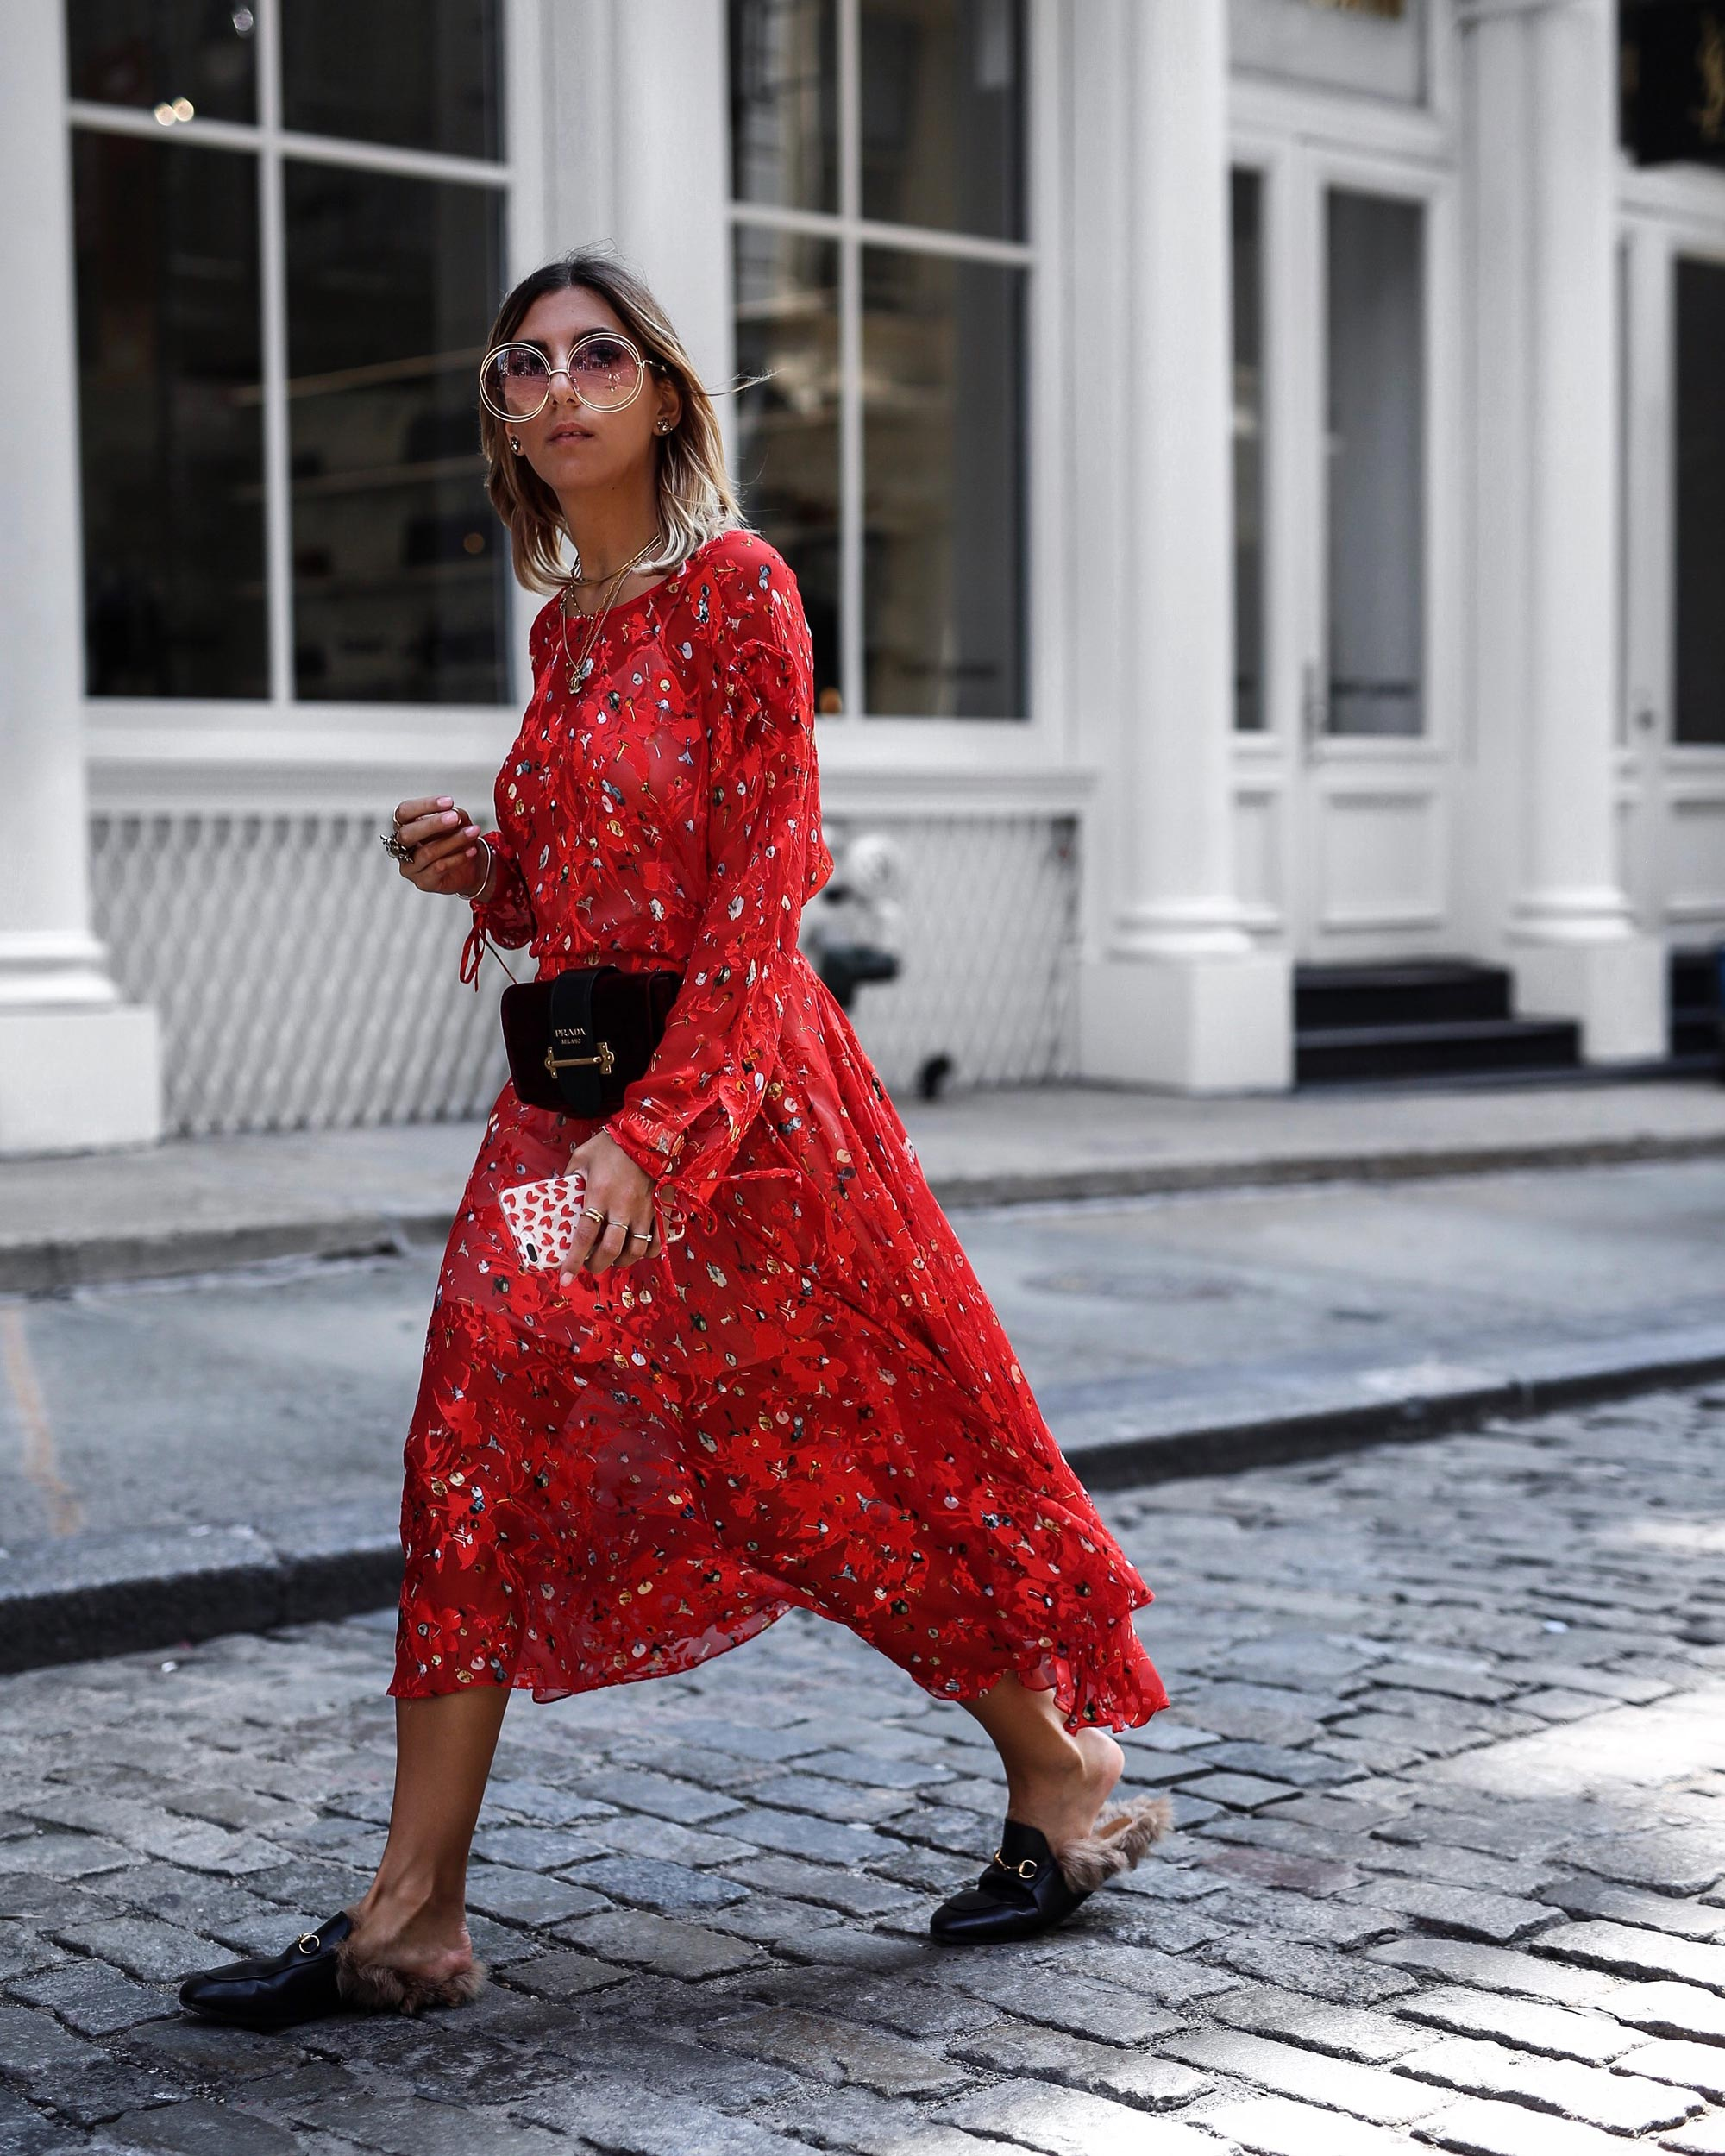 preen_by_thornton_dress_Street_style